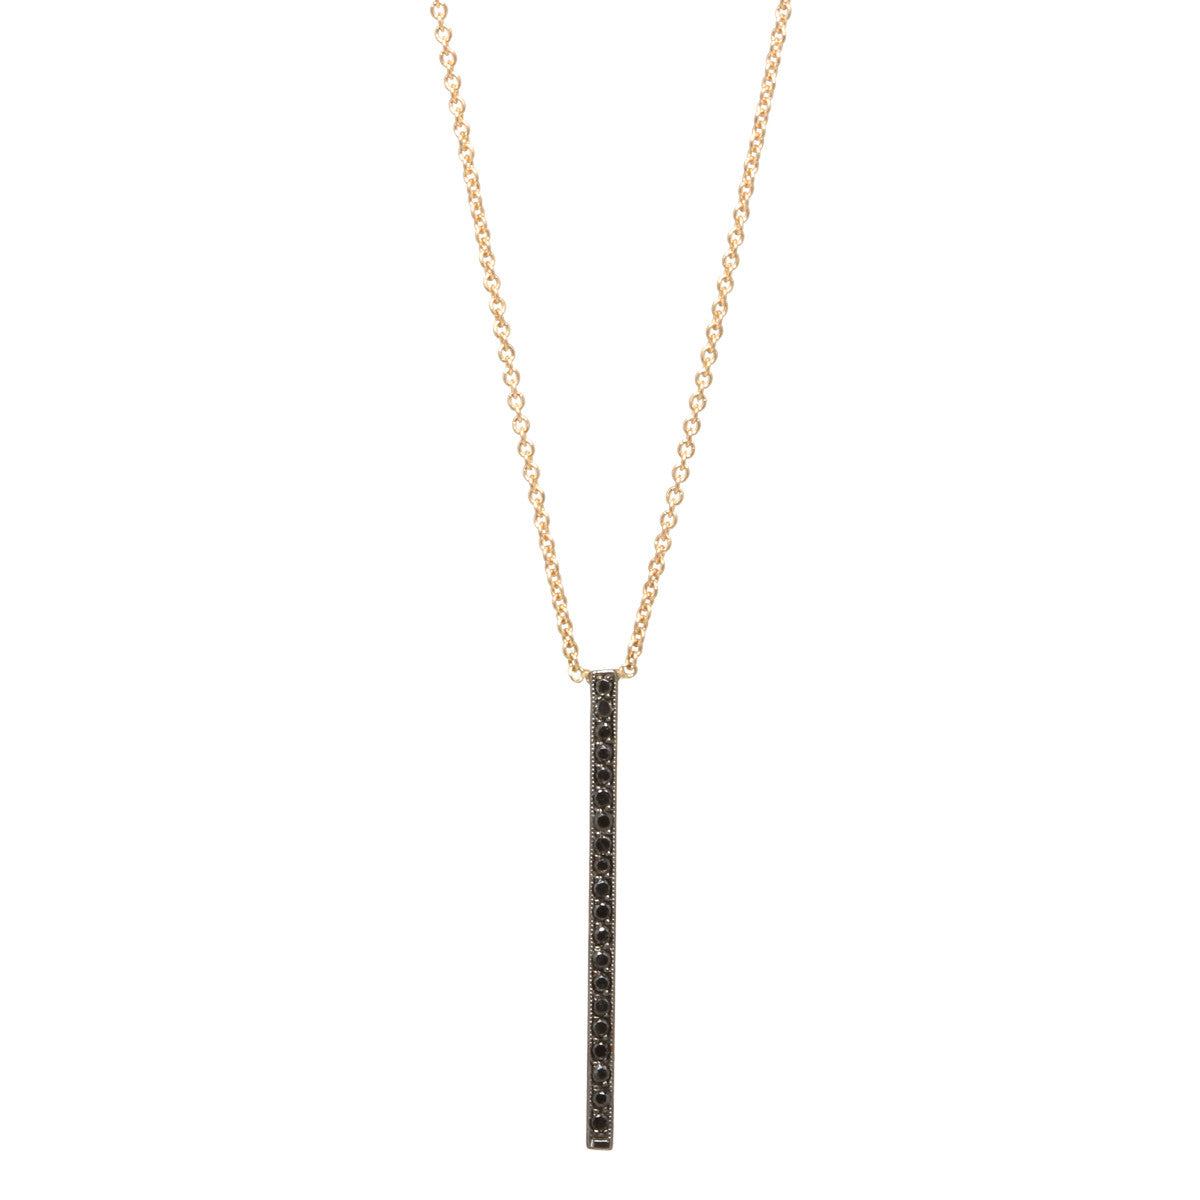 14k black pave vertical bar necklace